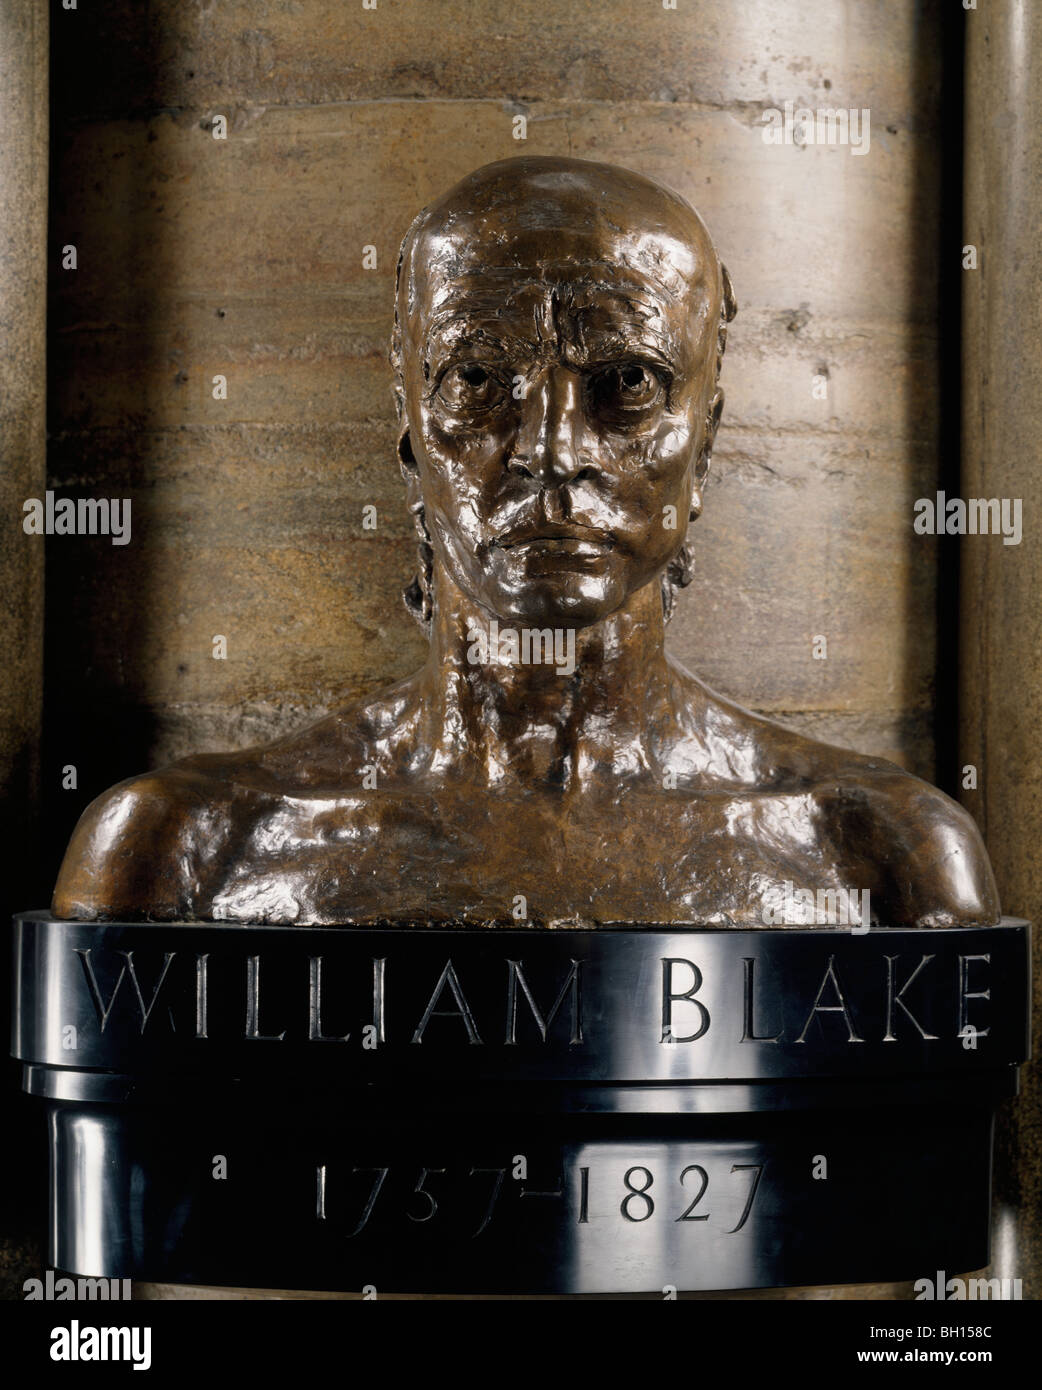 William Blake bronze bust by Jacob Epstein. South transept (Poet's Corner) Westminster Abbey London England - Stock Image